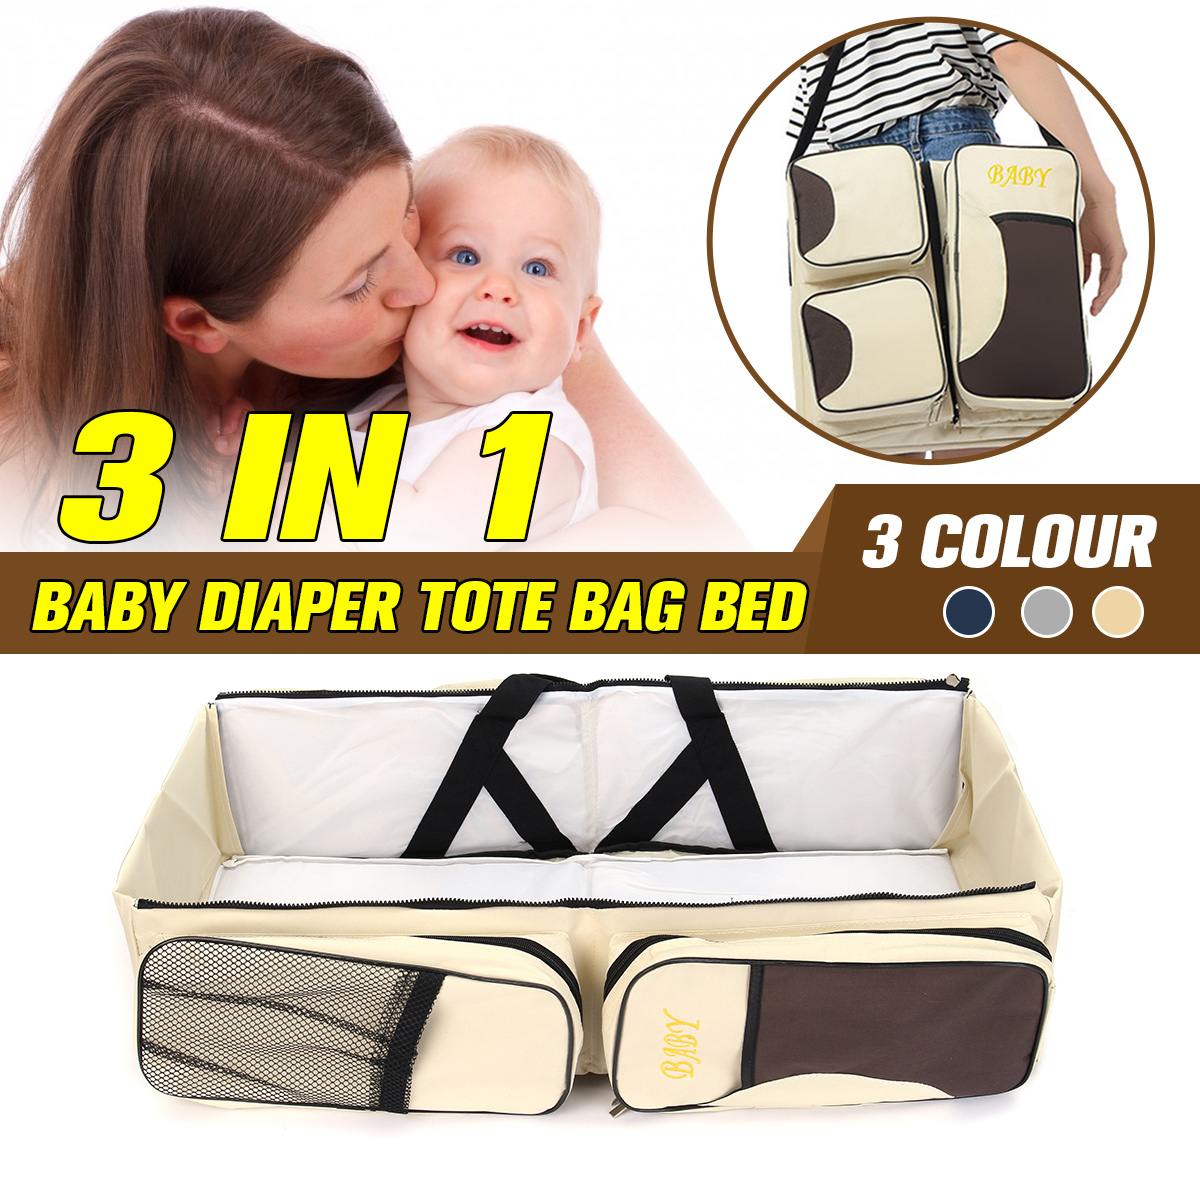 Fashion Large Space Nappy Bag Diapers Bag Folding Mummy Travel Baby Bed Kids Bottle Cloth Case 3 in 1 Portable Nappy Nursing Bag